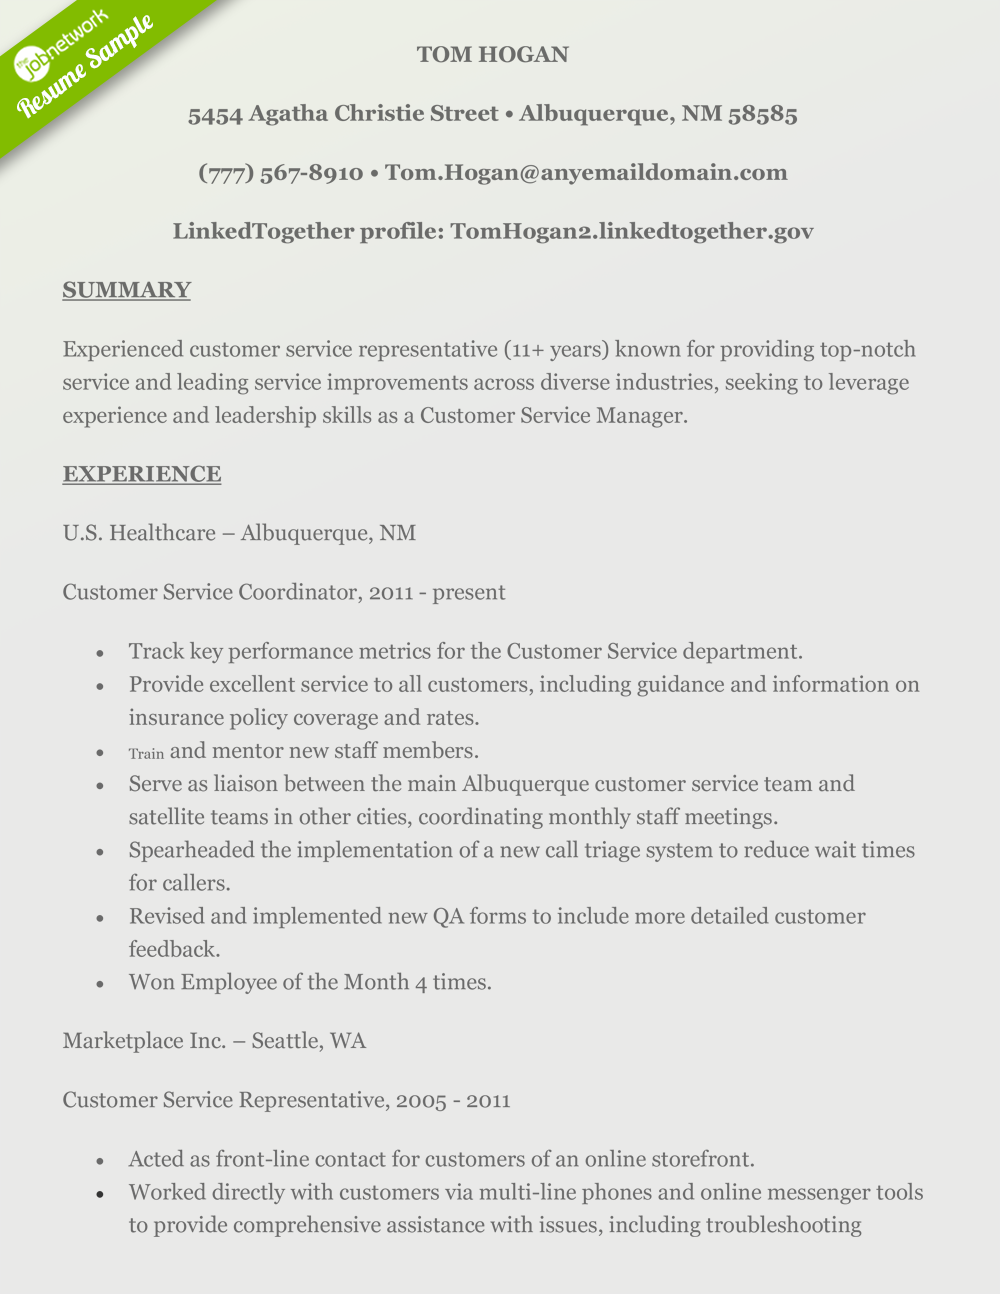 Tom Hogan Resume  My Perfect Resume Customer Service